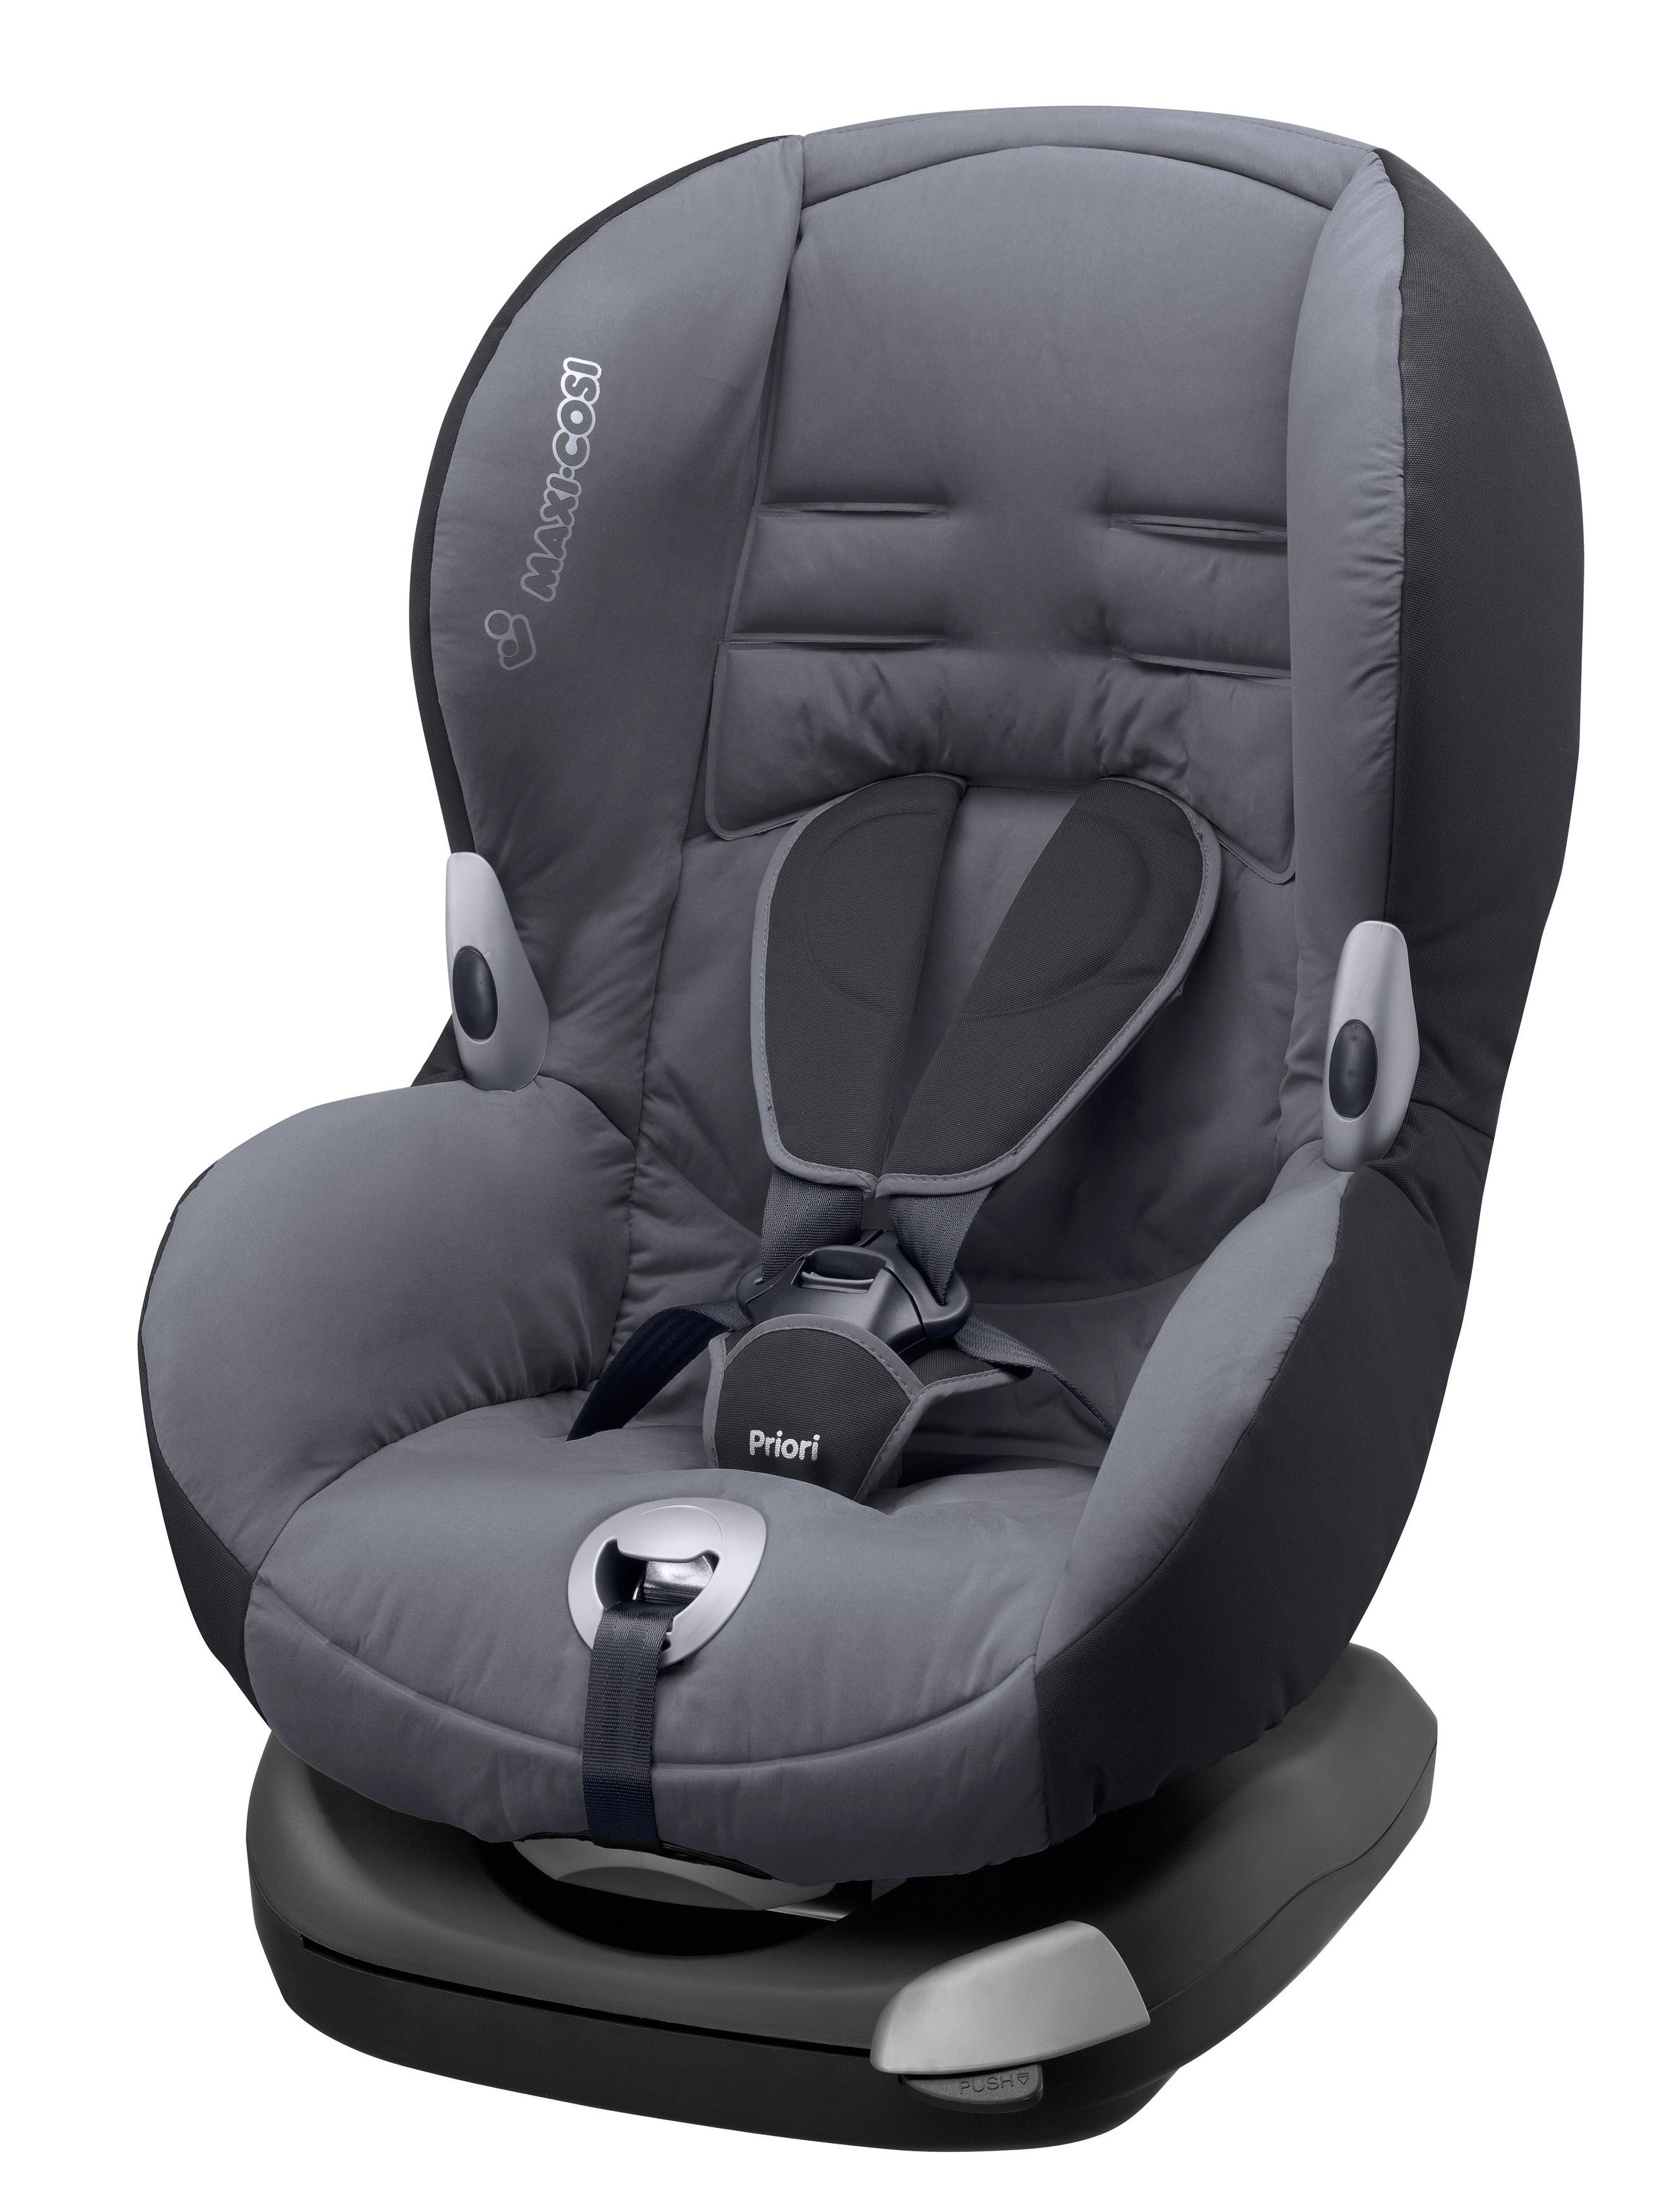 maxi cosi priori xp group 1 car seat solid grey 2015. Black Bedroom Furniture Sets. Home Design Ideas